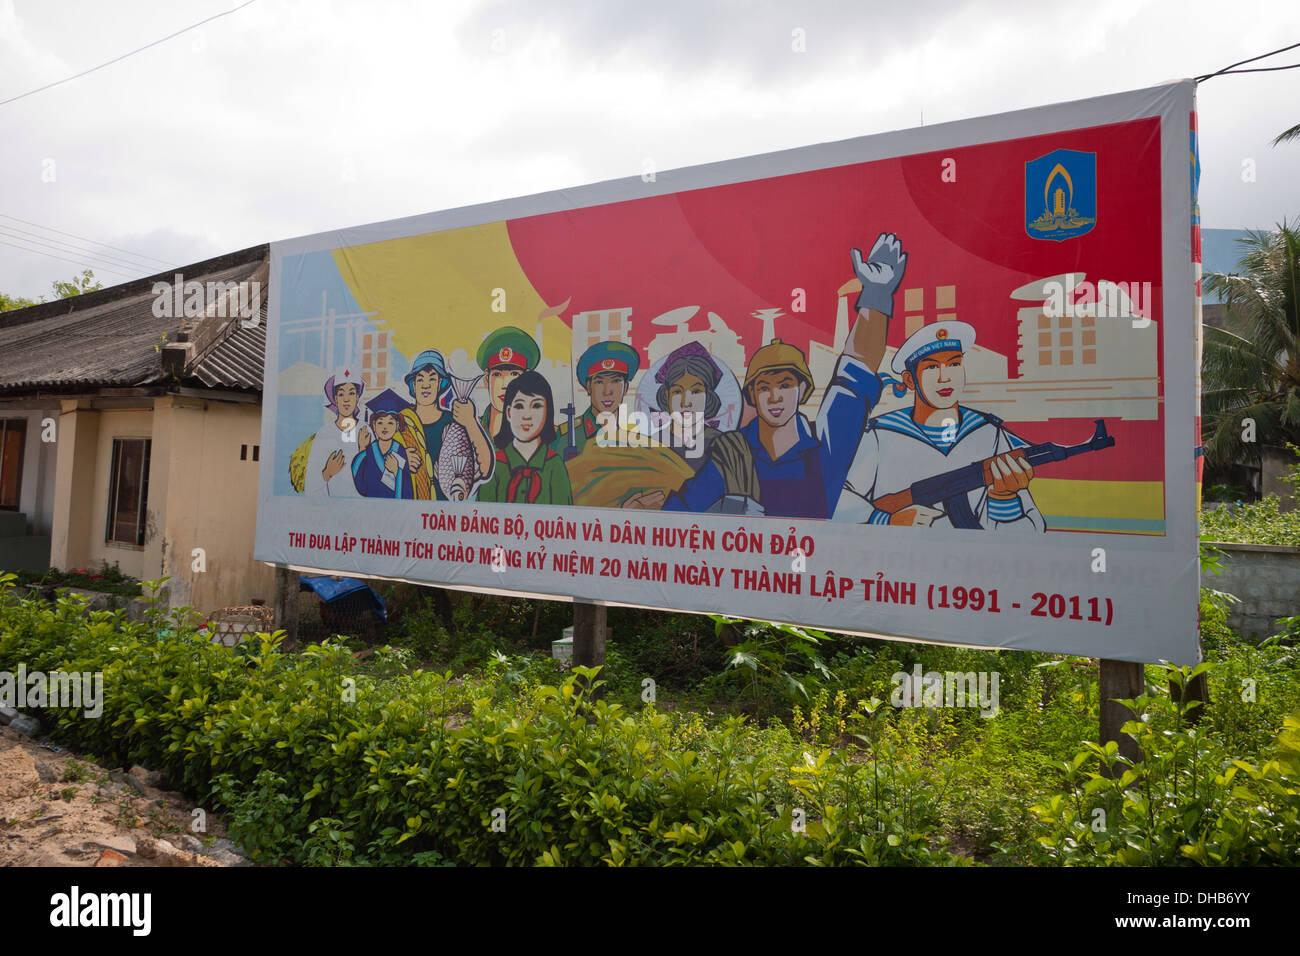 A Communist Party of Vietnam sign in Con Son Town, Con Son Island, Con Dao Islands, Vietnam. - Stock Image